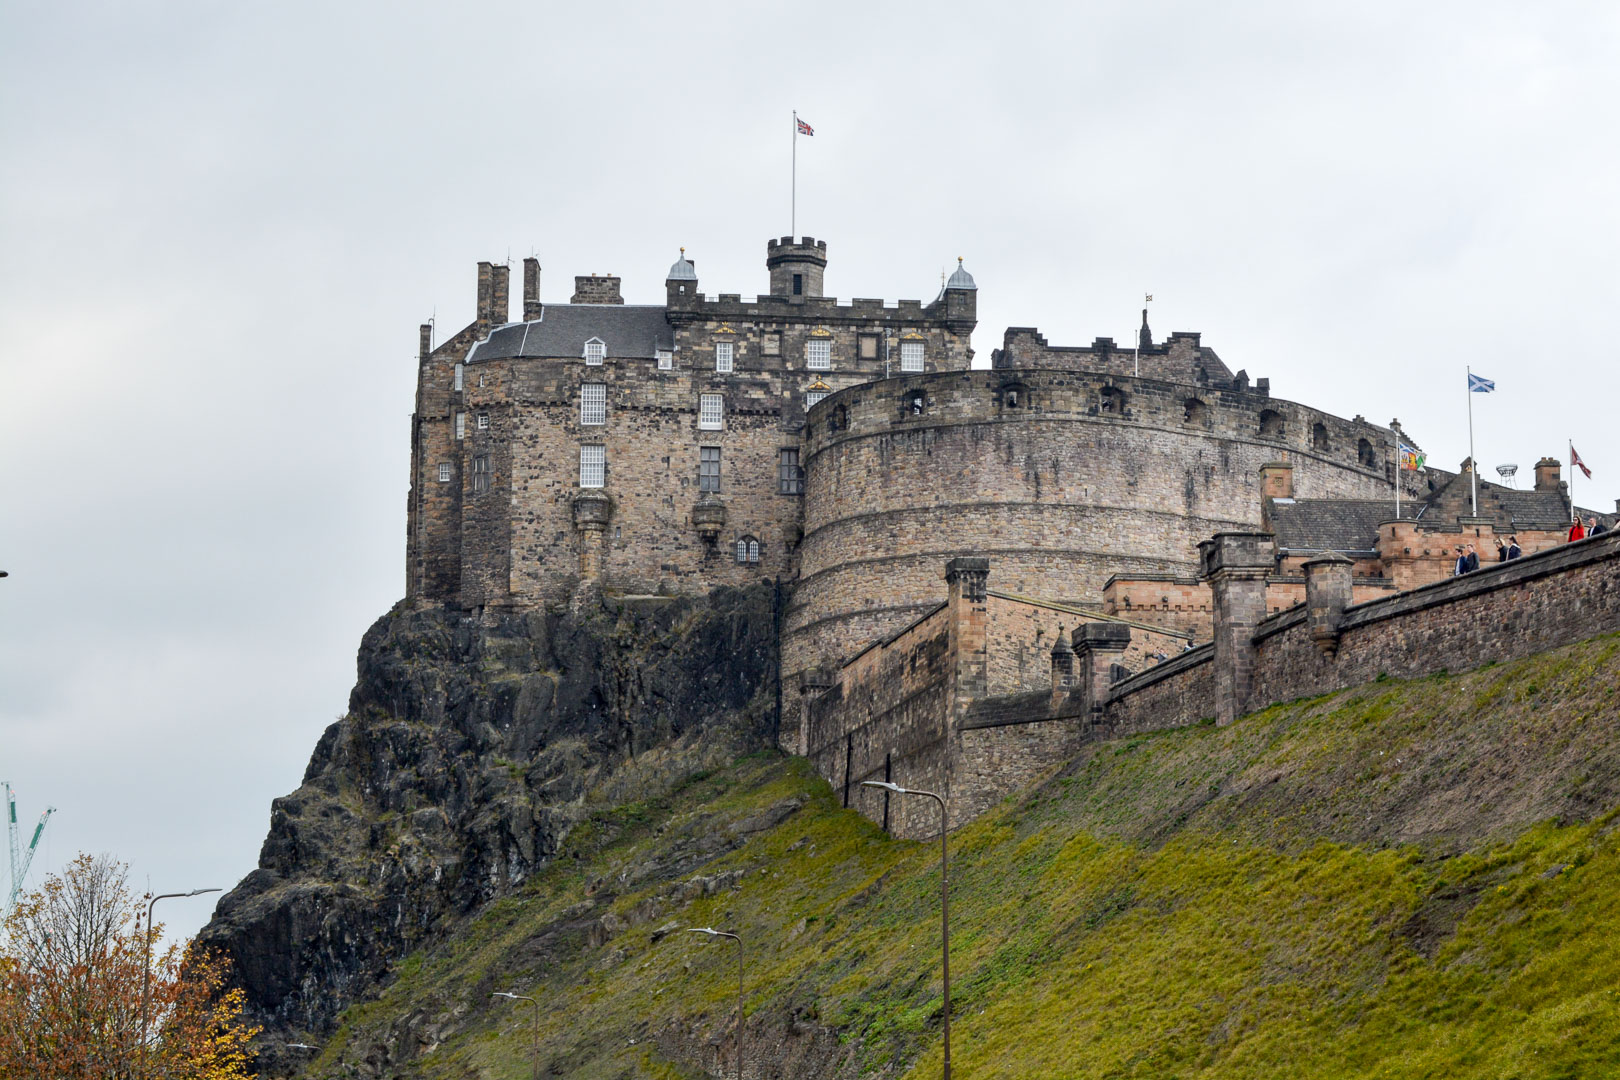 Edinburgh Castle was built on top of an old volcano! This picture gives a nice view of the Castle on the rock